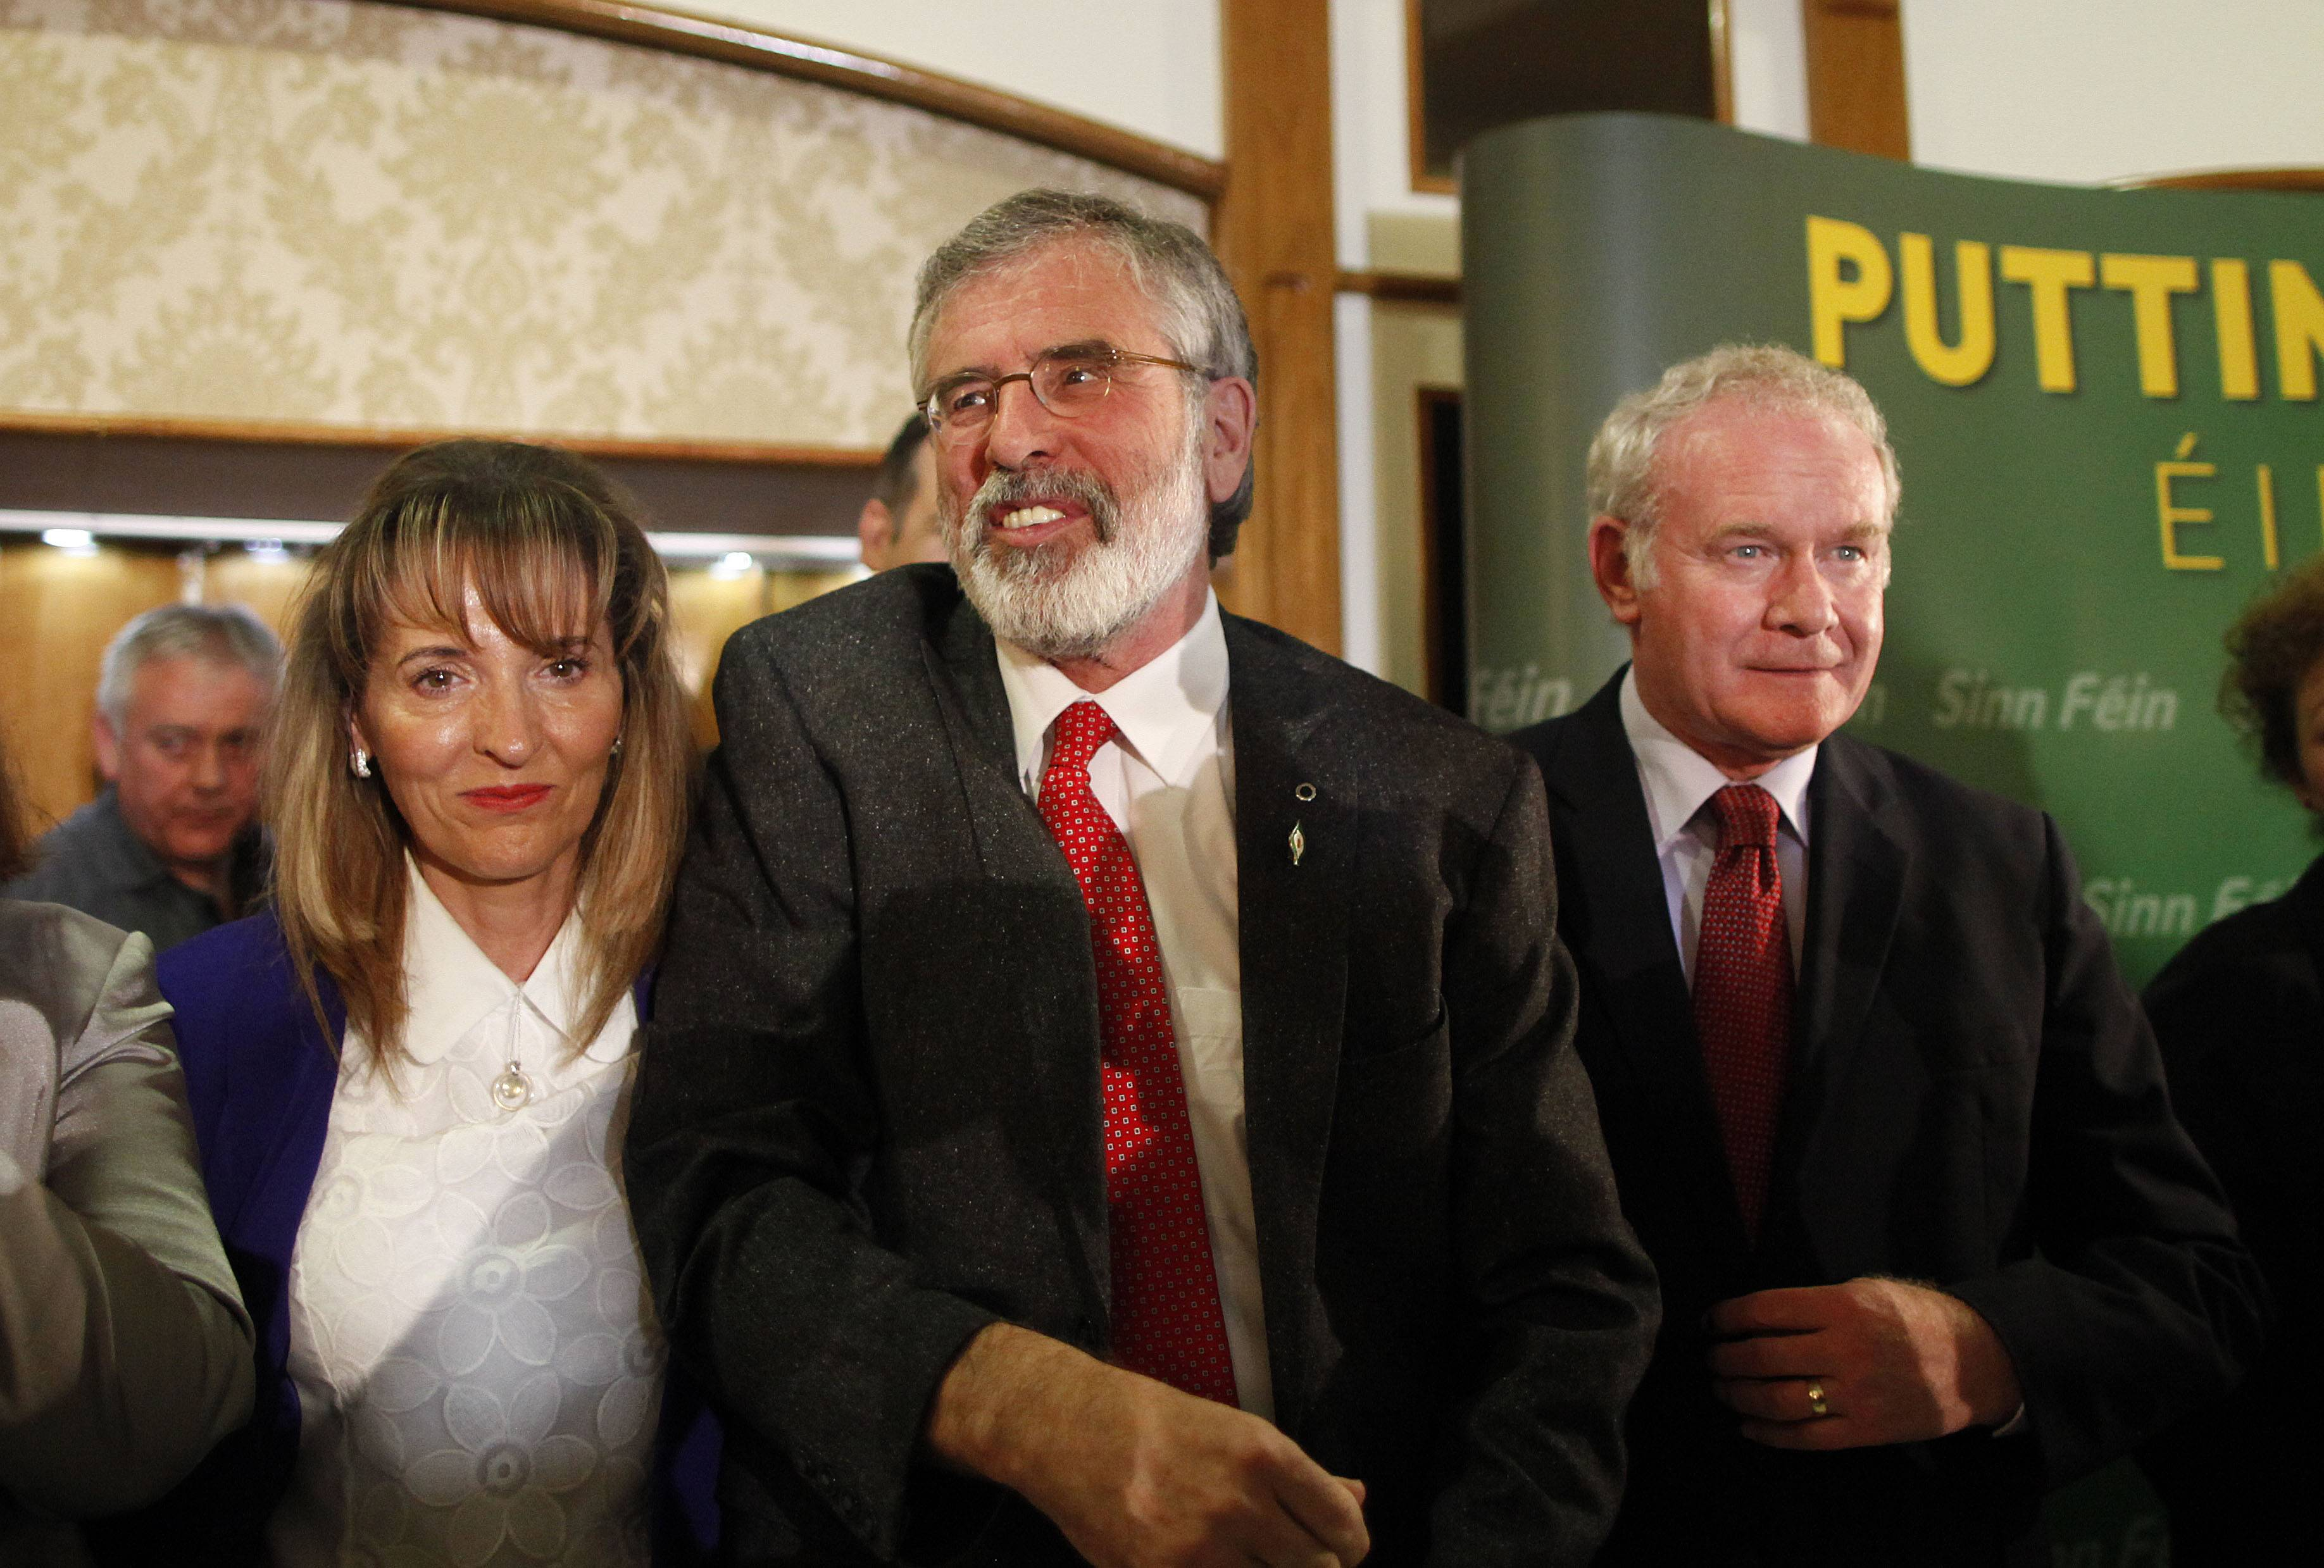 Sinn Fein President Gerry Adams, center, Martina Anderson, left, and Martin McGuinness speak to the media in West Belfast, Northern Ireland, Sunday. Adams was released without charge Sunday after five days of police questioning over his alleged involvement in a decades-old Irish Republican Army killing, an event that has driven a dangerous wedge into Northern Ireland's unity government.